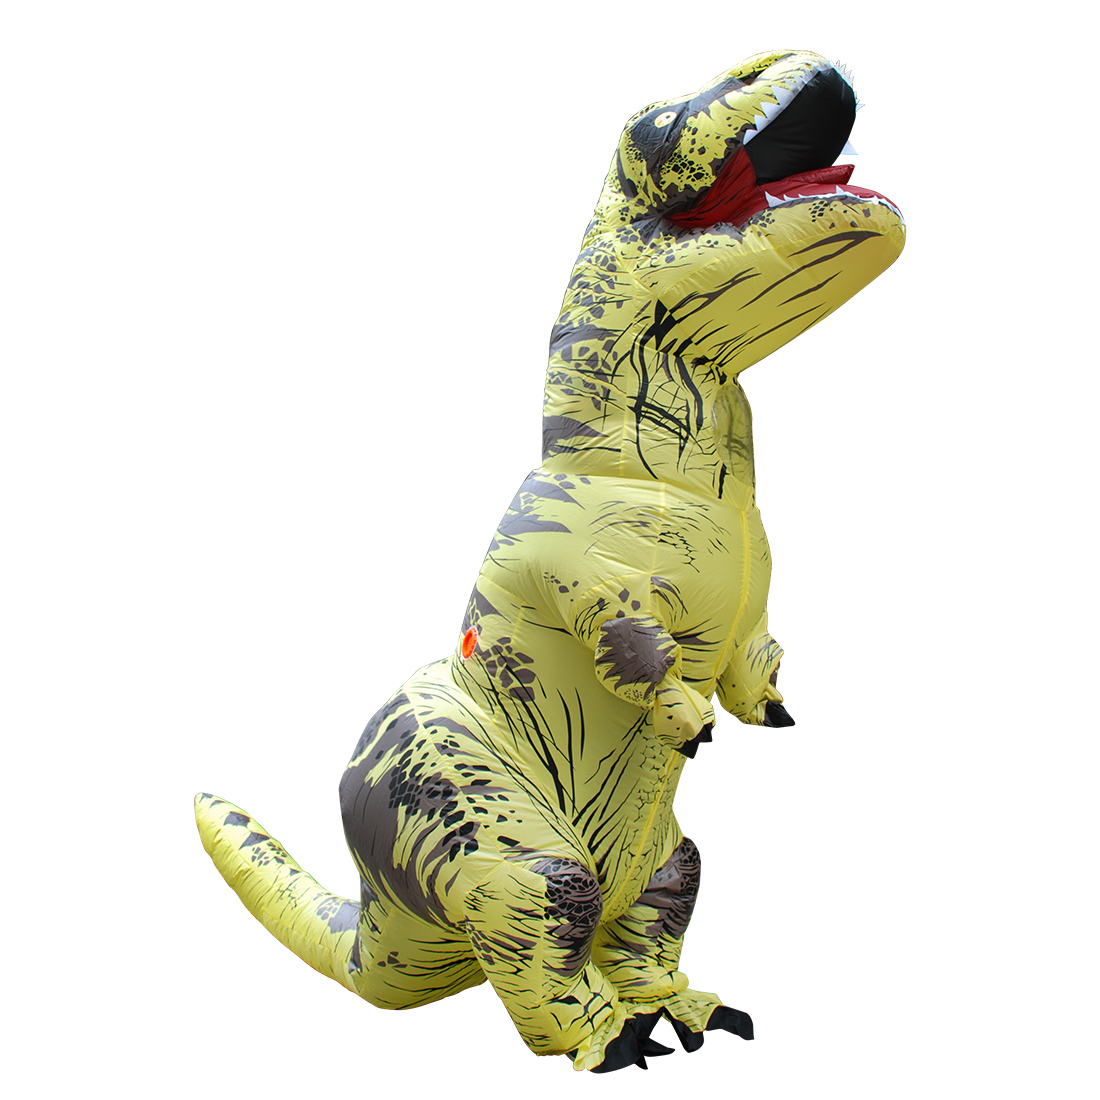 2017 Adult Yellow Polyester T-REX INFLATABLE Dinosaur Costume Halloween Costumes for Men Fancy Dress with Pump Carnival